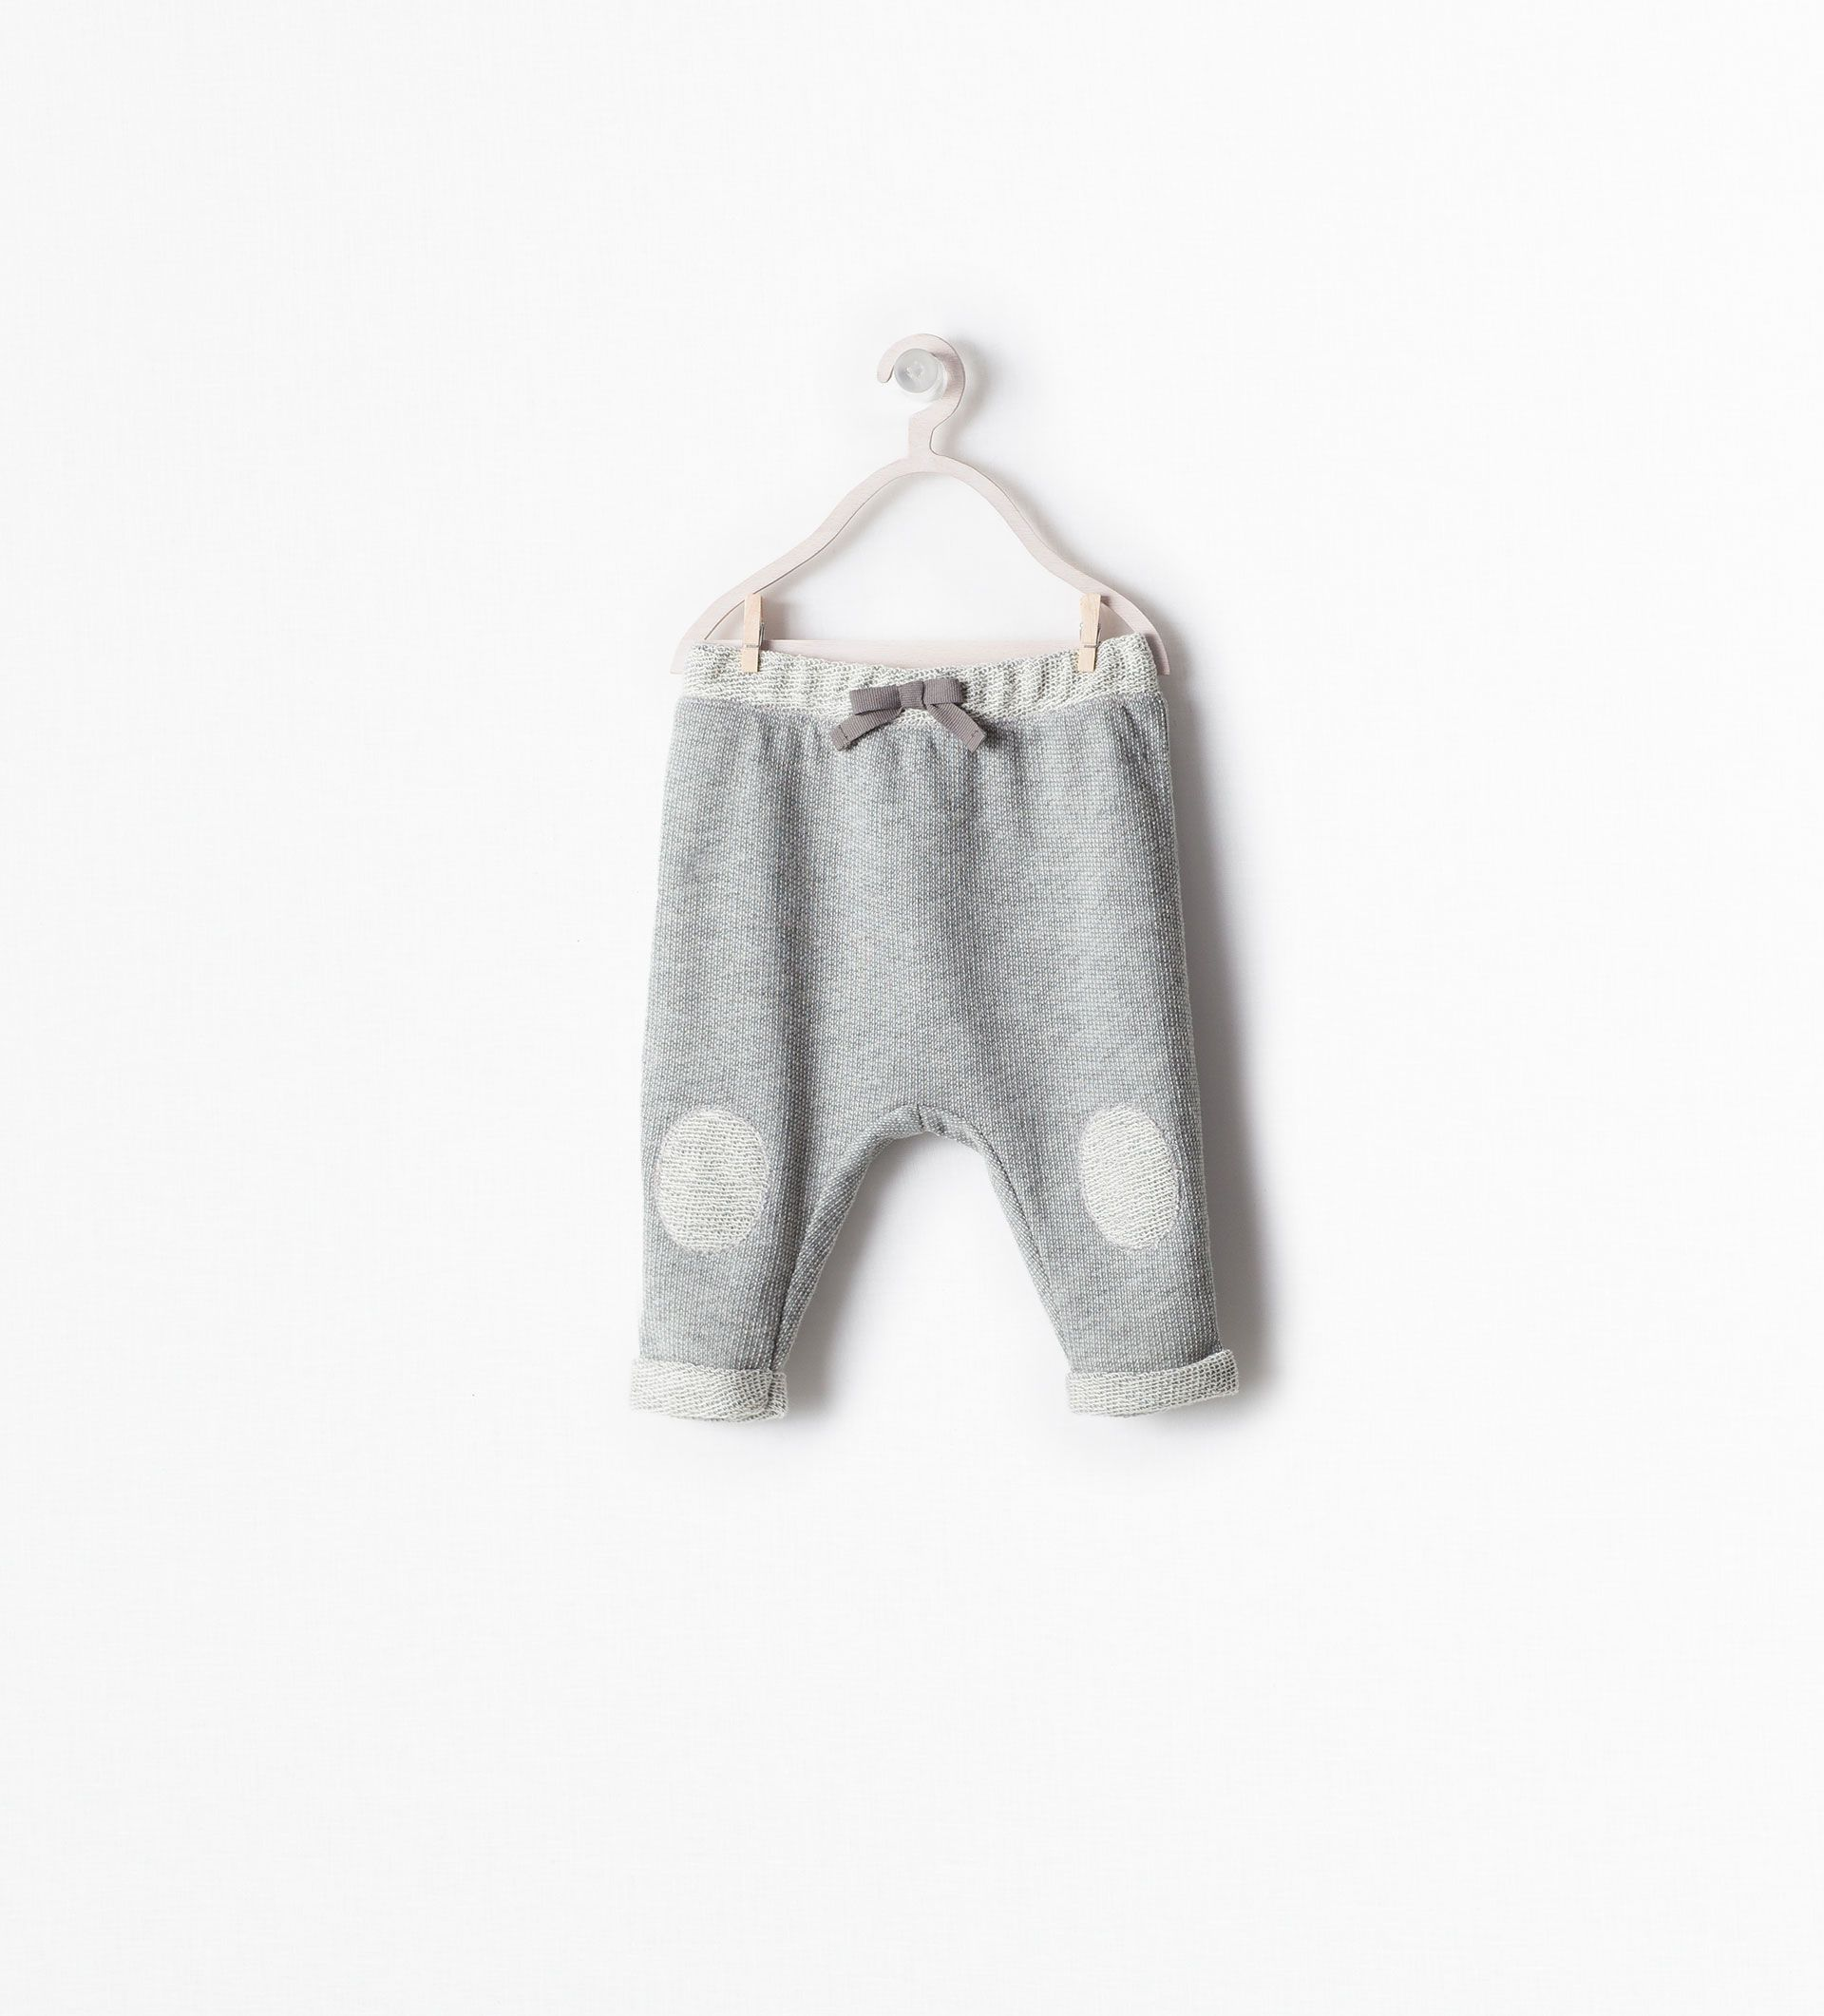 110481aa15e35a TROUSERS WITH KNEE PATCH - purchase 6 - 12 mo Cotton Harem Pants, Cute Baby